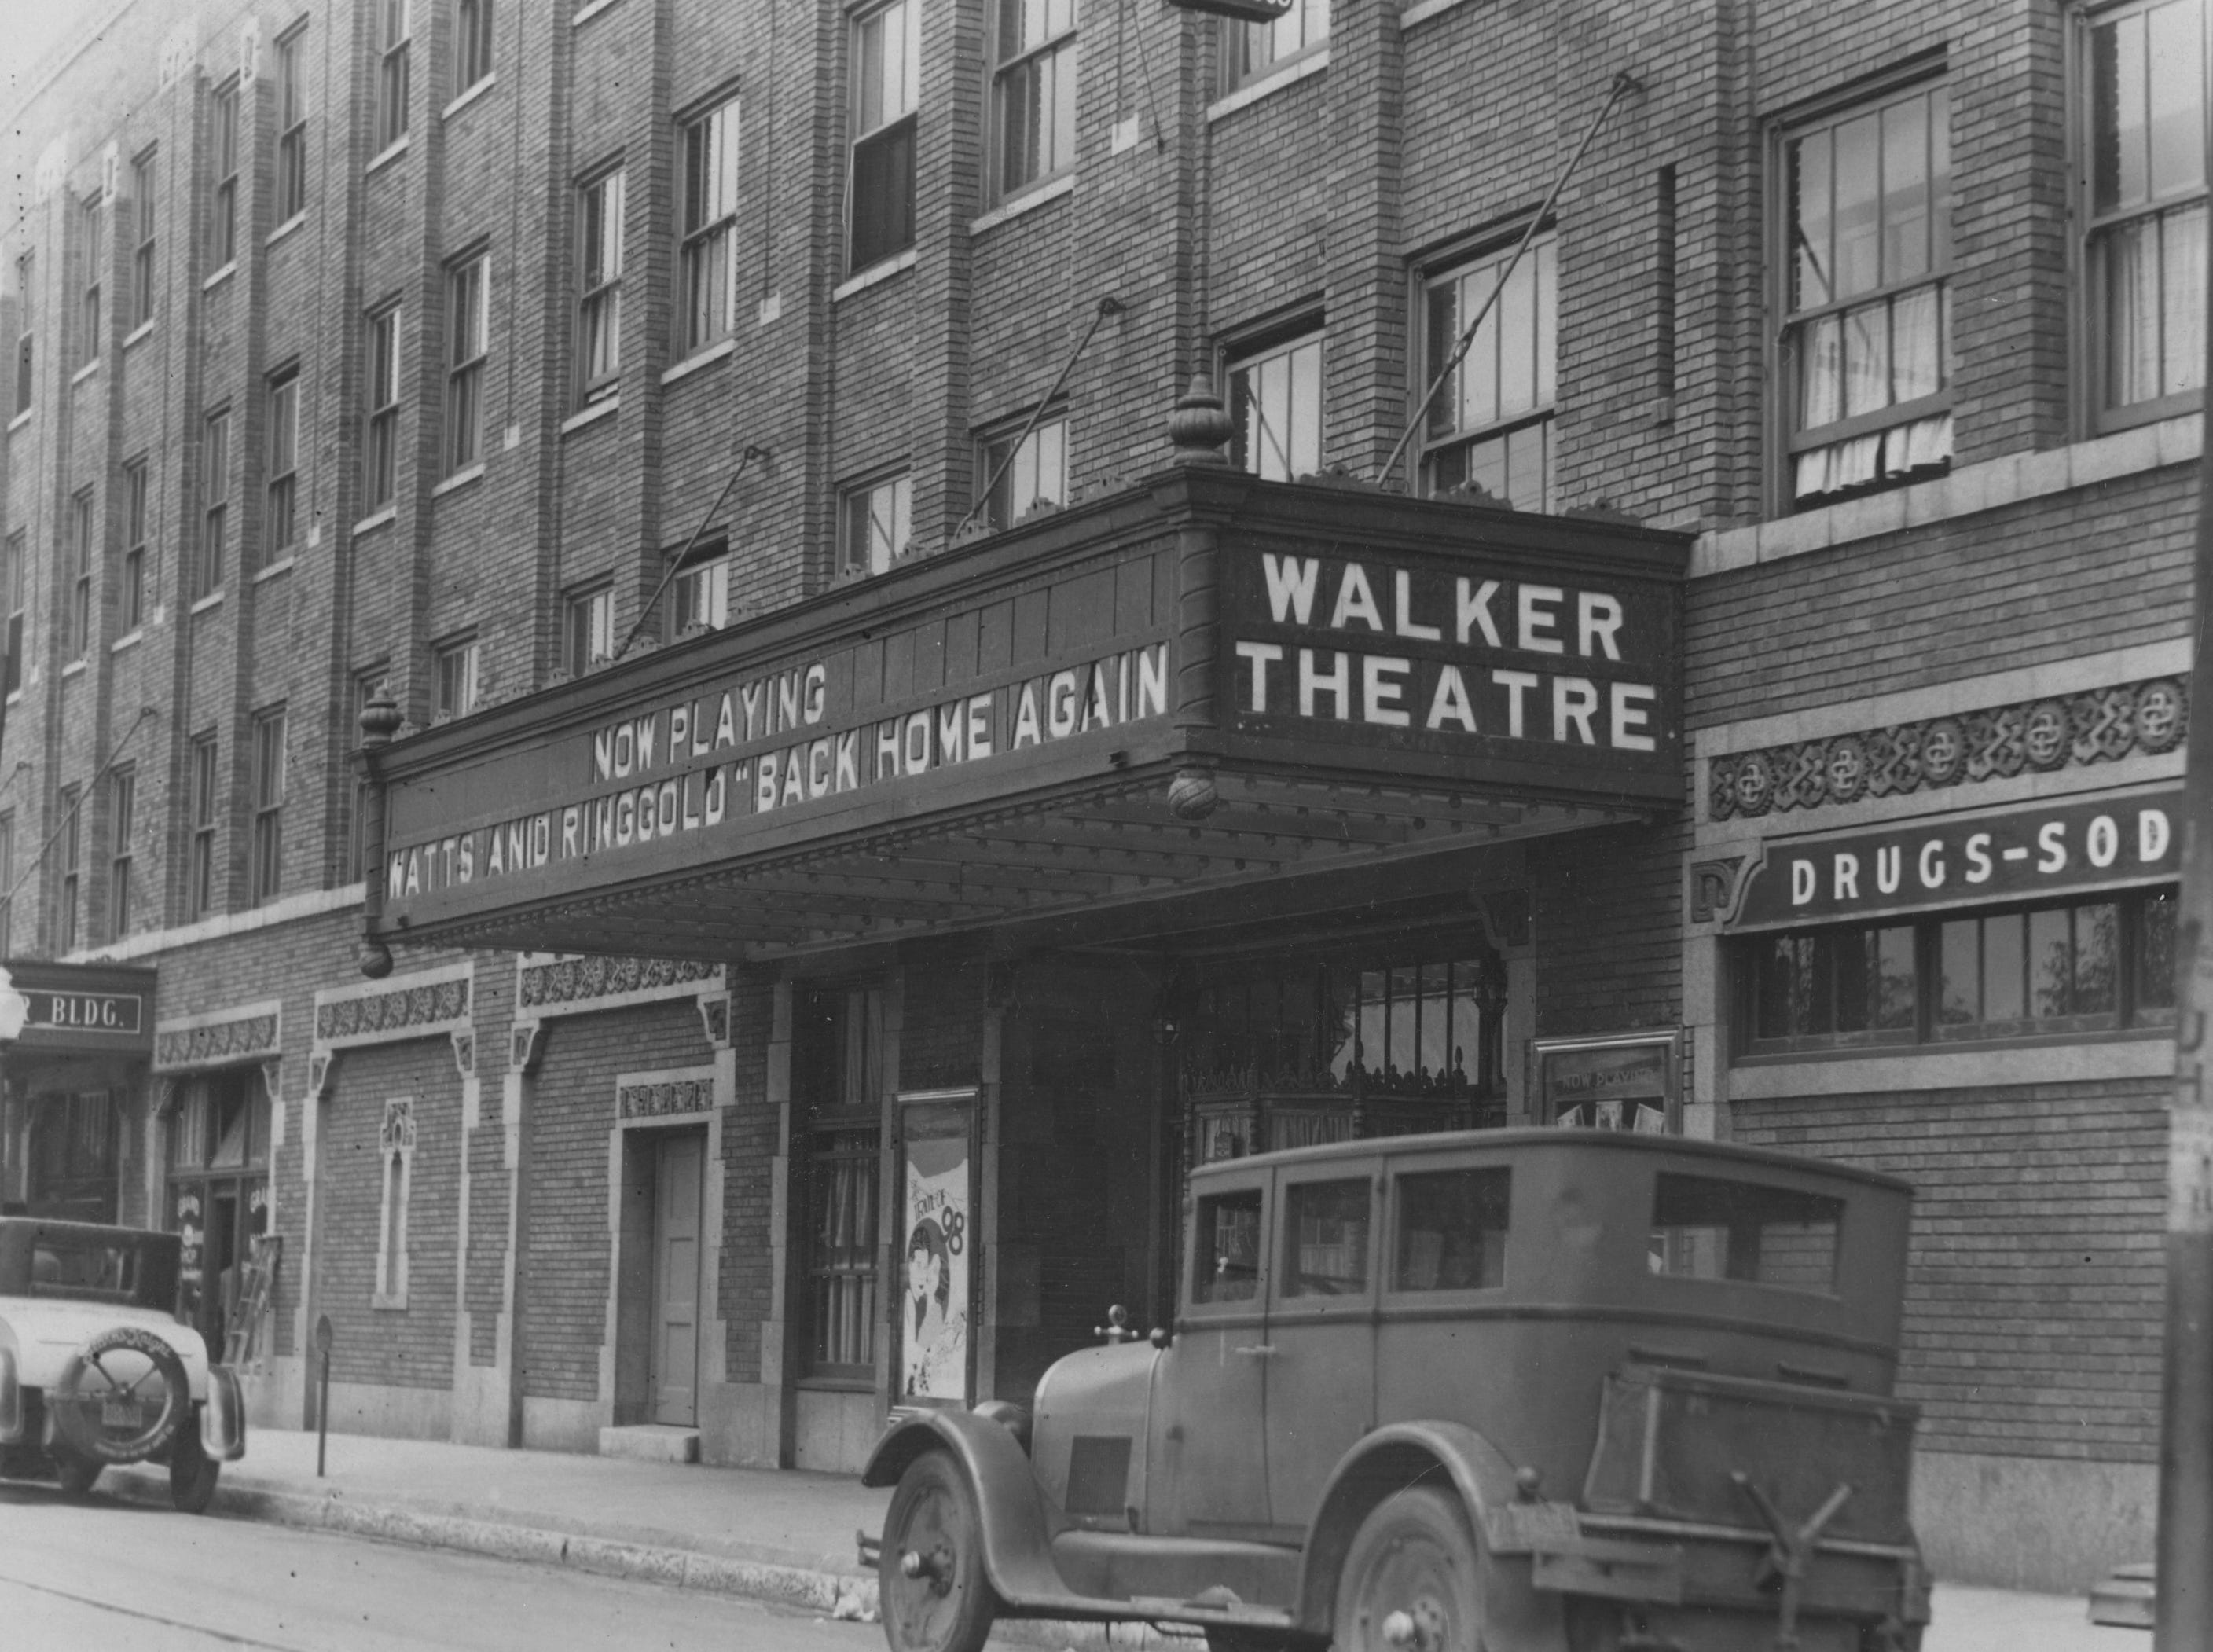 "Watts and Ringgold, brought their vaudeville stage show ""Back Home Again"" to the Walker Theatre in November 1928."